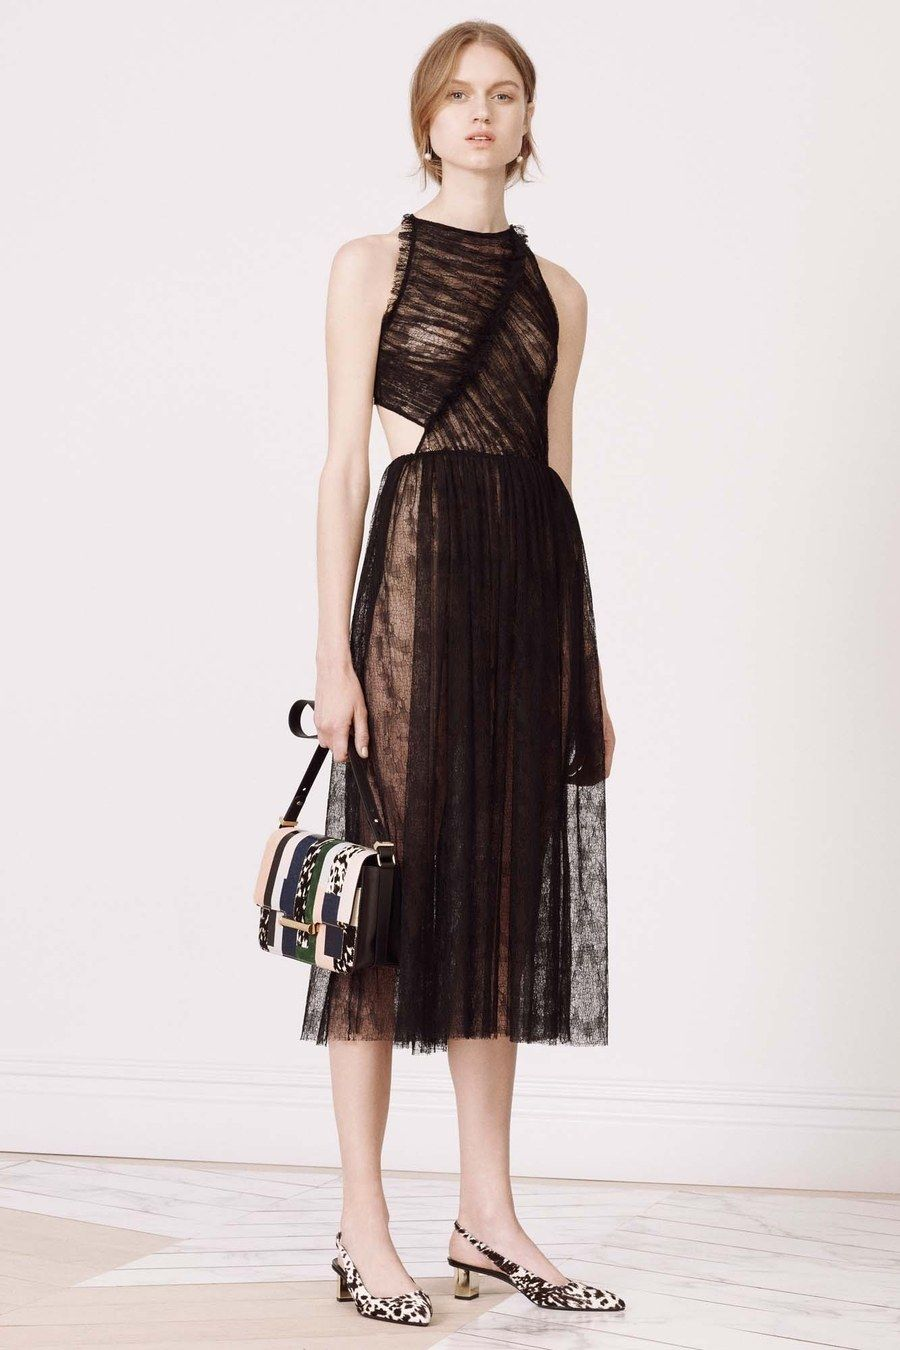 Jason Wu Proves the Slit Is It for SS 15 images